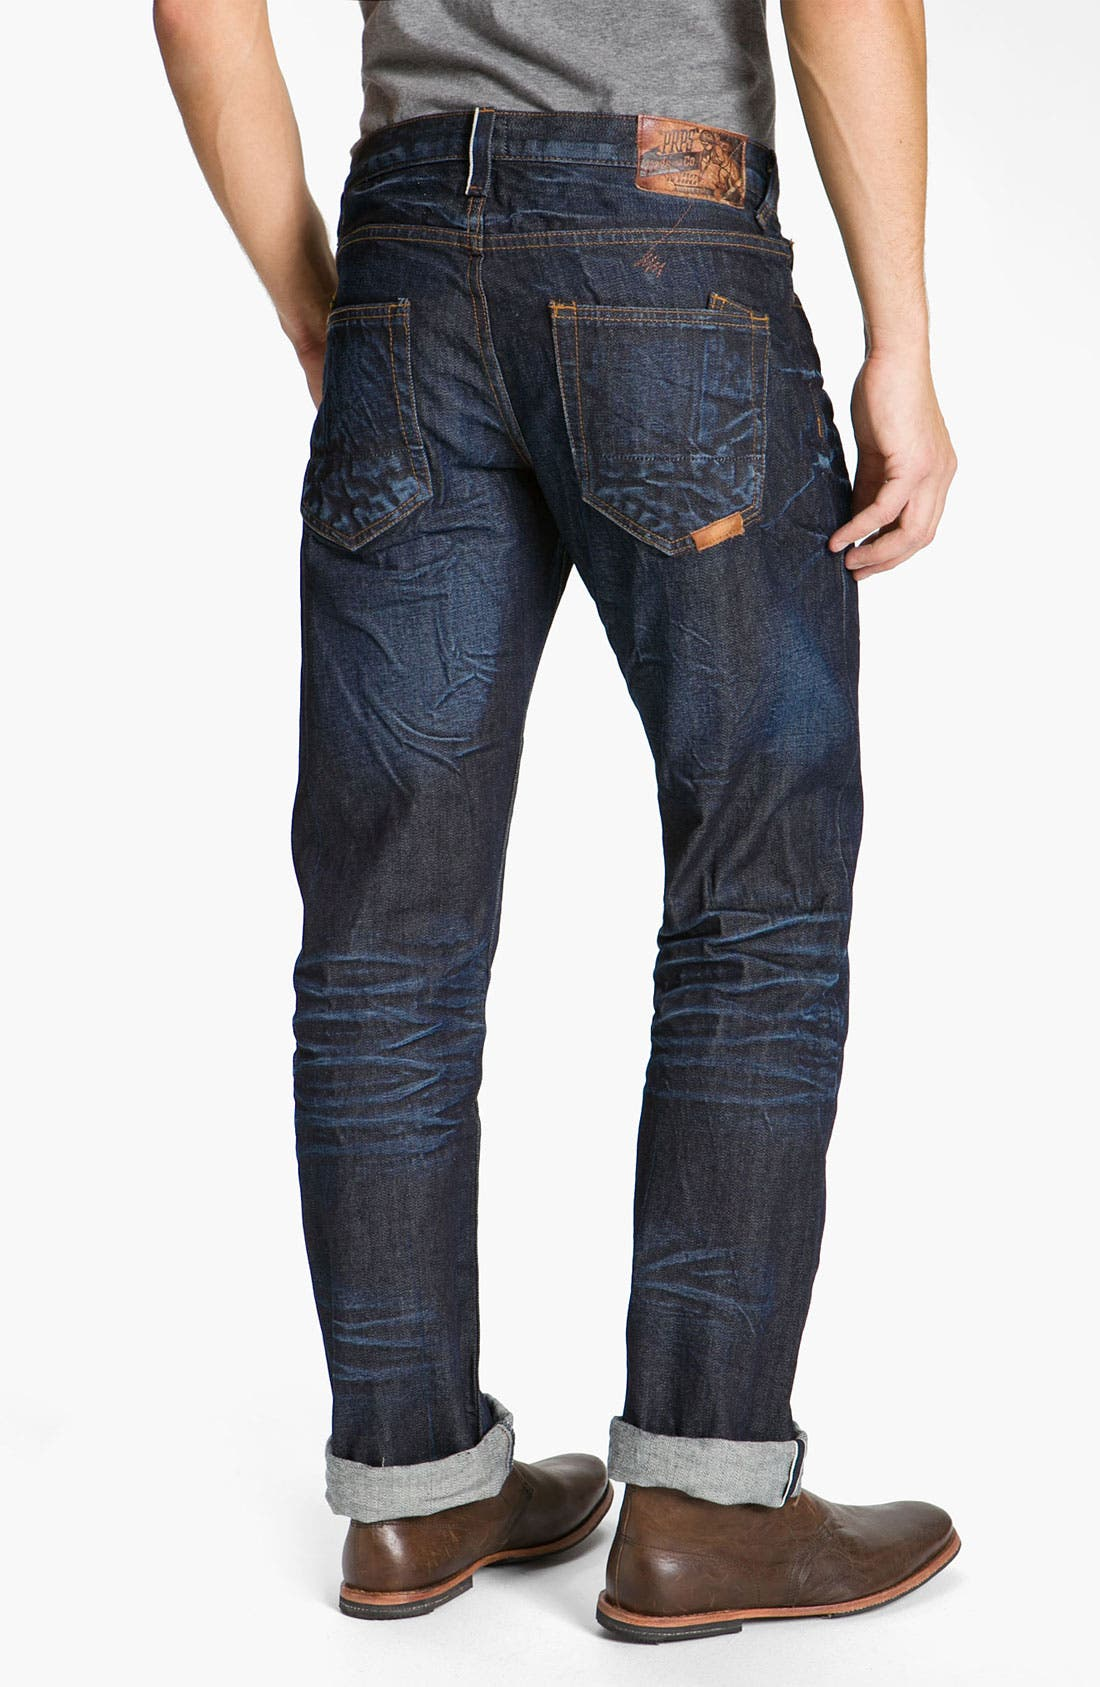 Alternate Image 1 Selected - PRPS 'Snowy Crevasses Barracuda' Straight Leg Jeans (1 Year Wash)